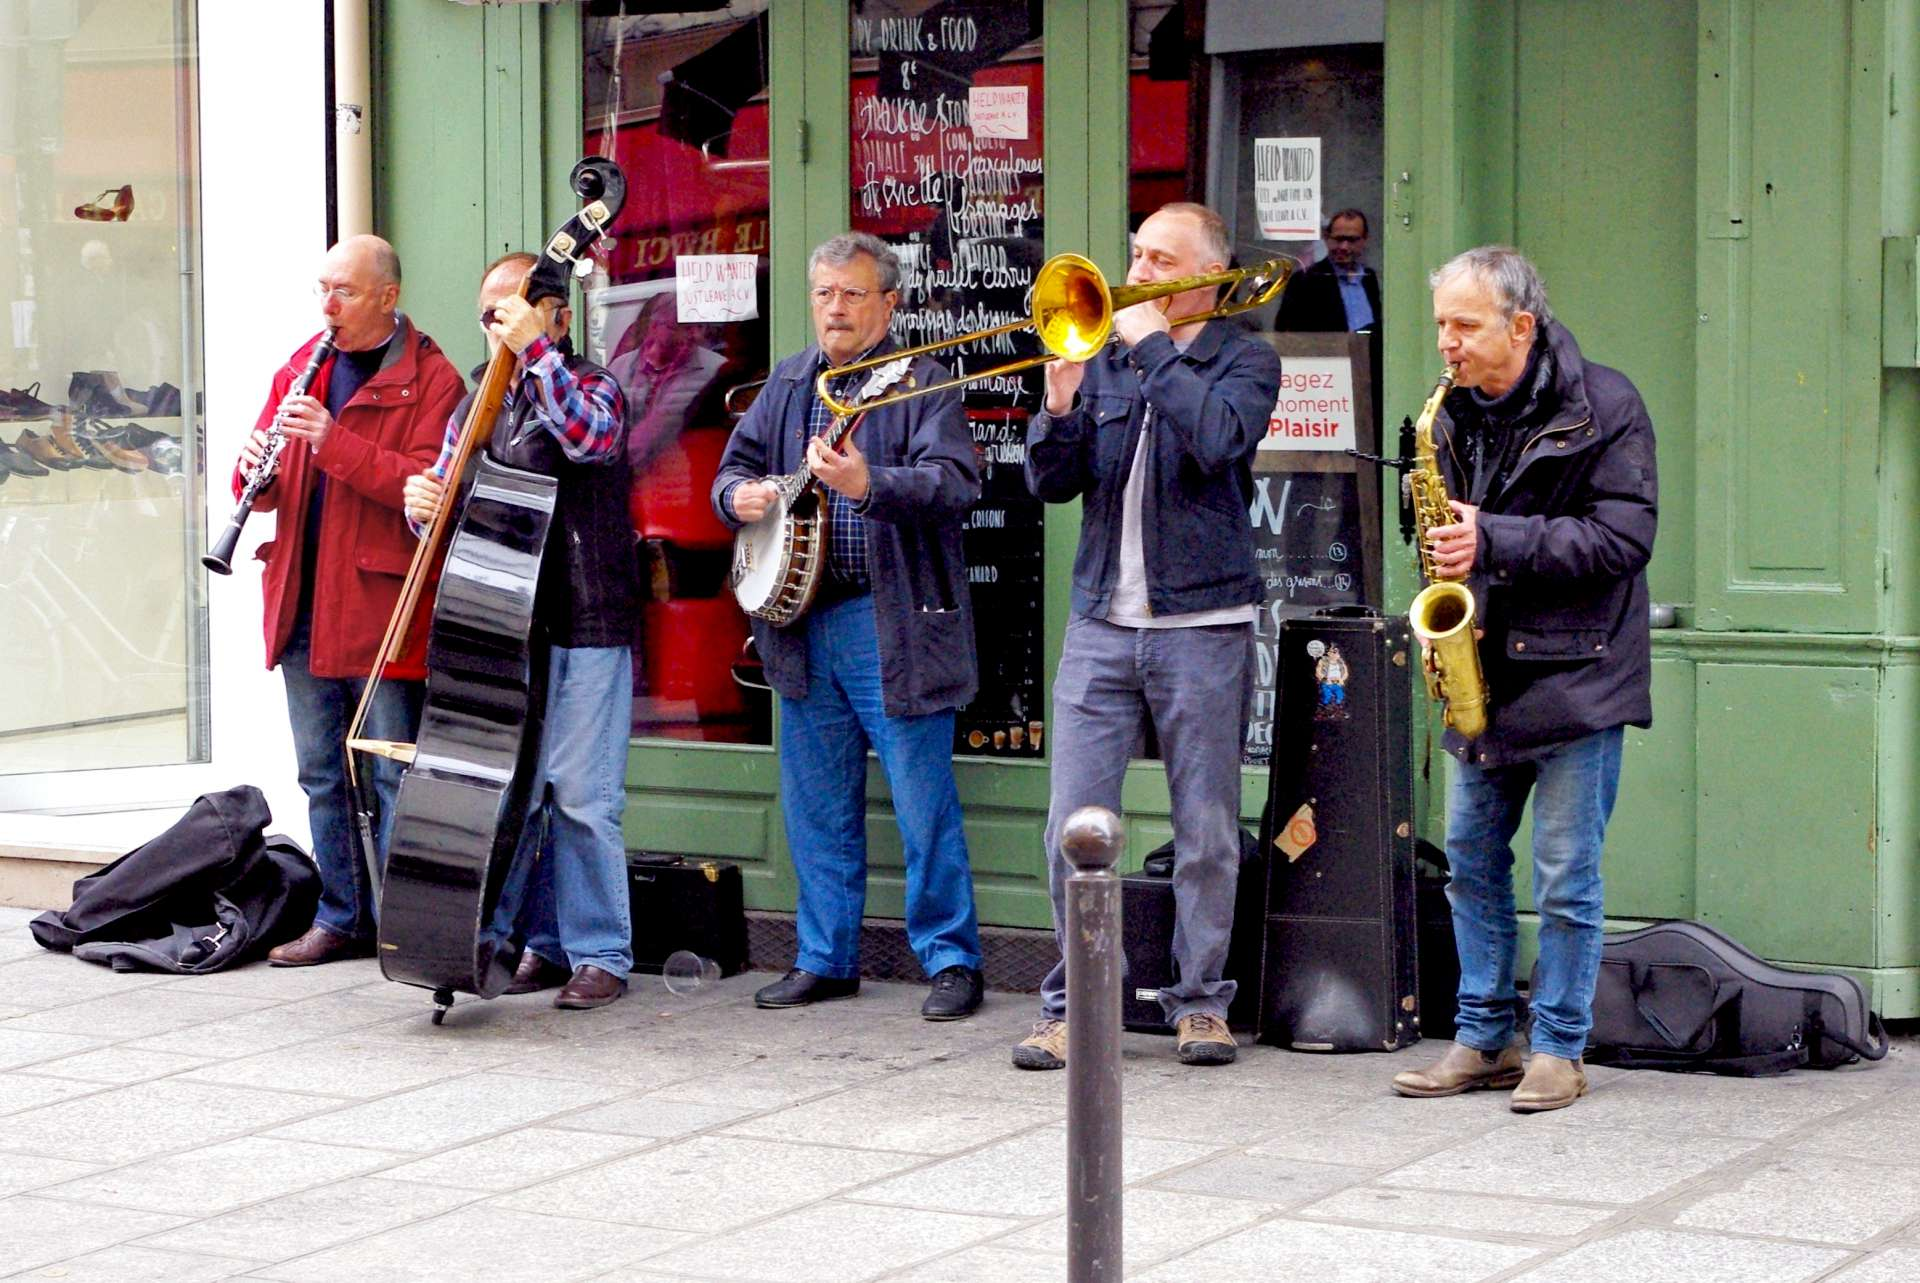 Band playing in St Germain copyright French Moments